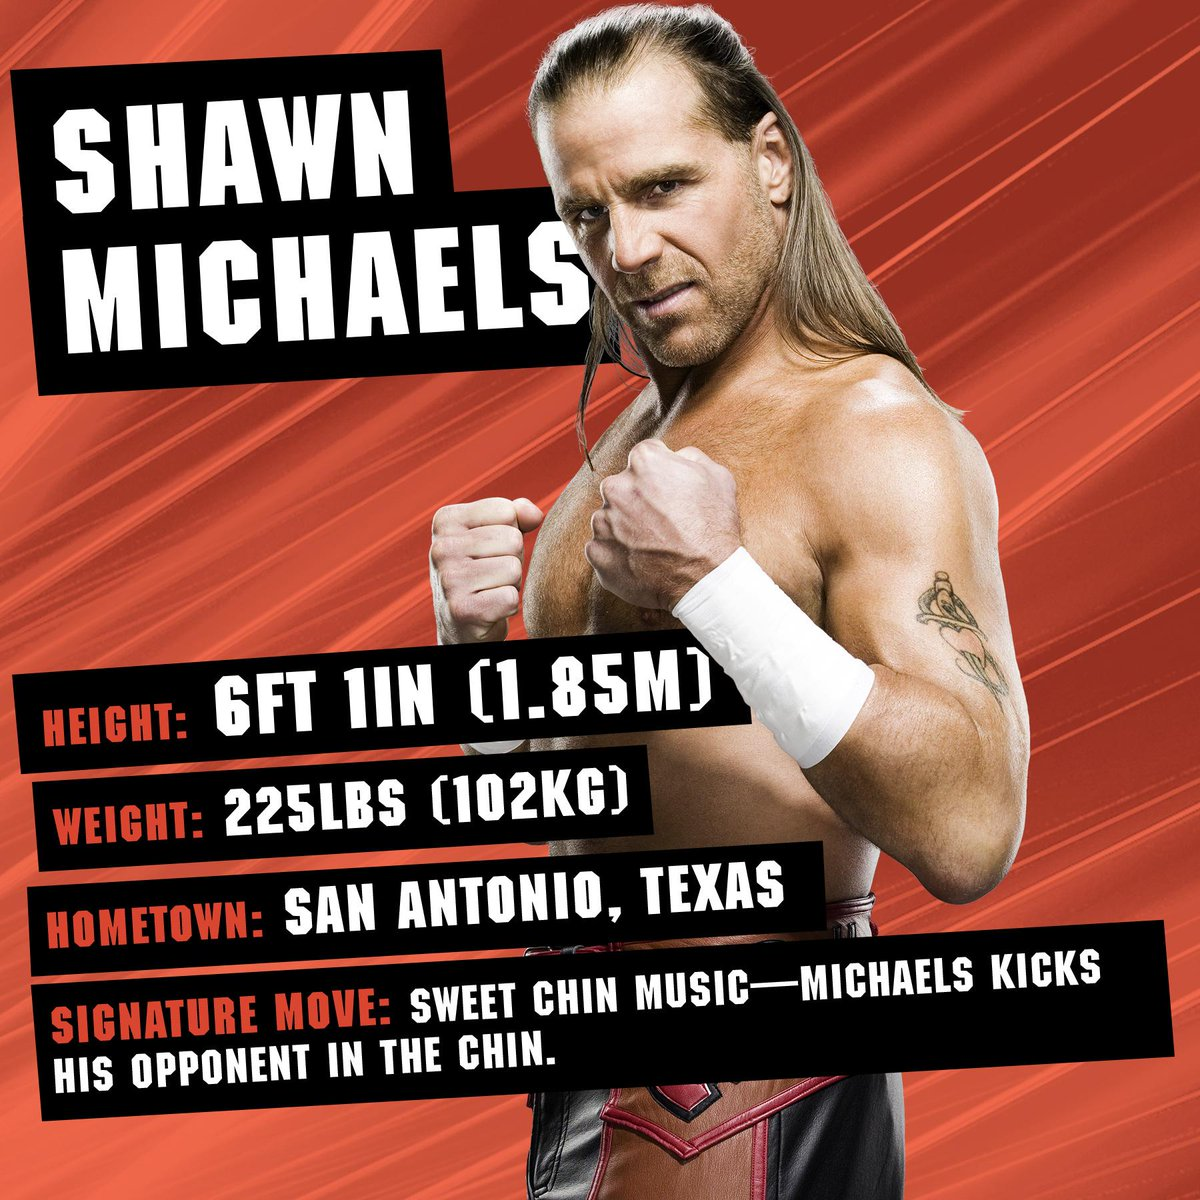 The @WWE Ultimate Superstar Guide is a SHOWSTOPPER! @ShawnMichaels wwe.me/zPY9Ha